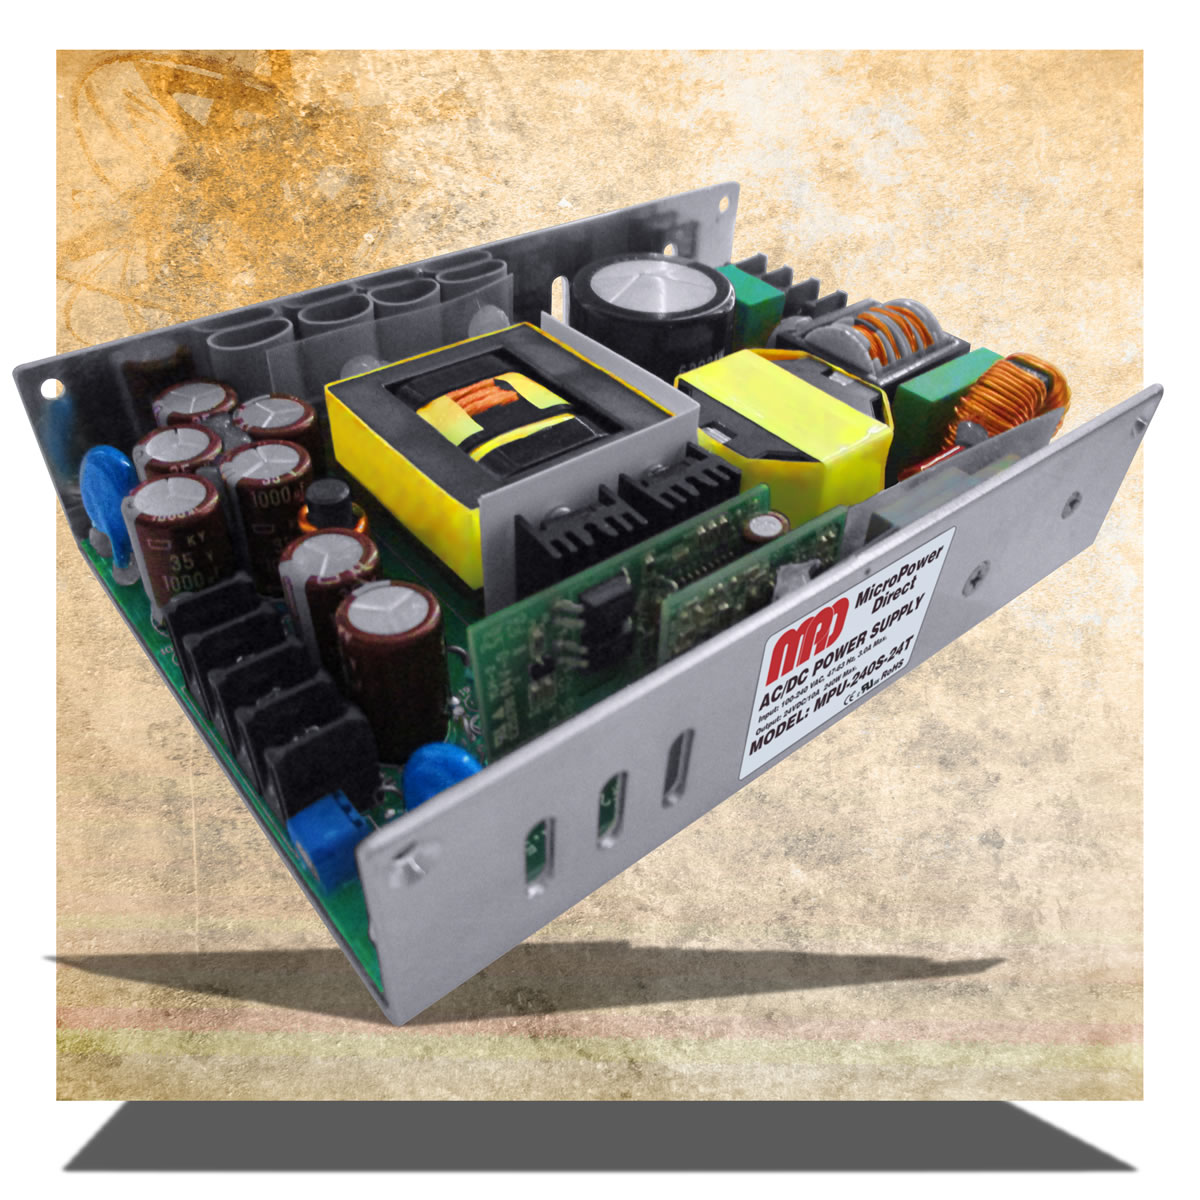 MicroPower Direct introduces MPU-240S series of AC/DC power supplies